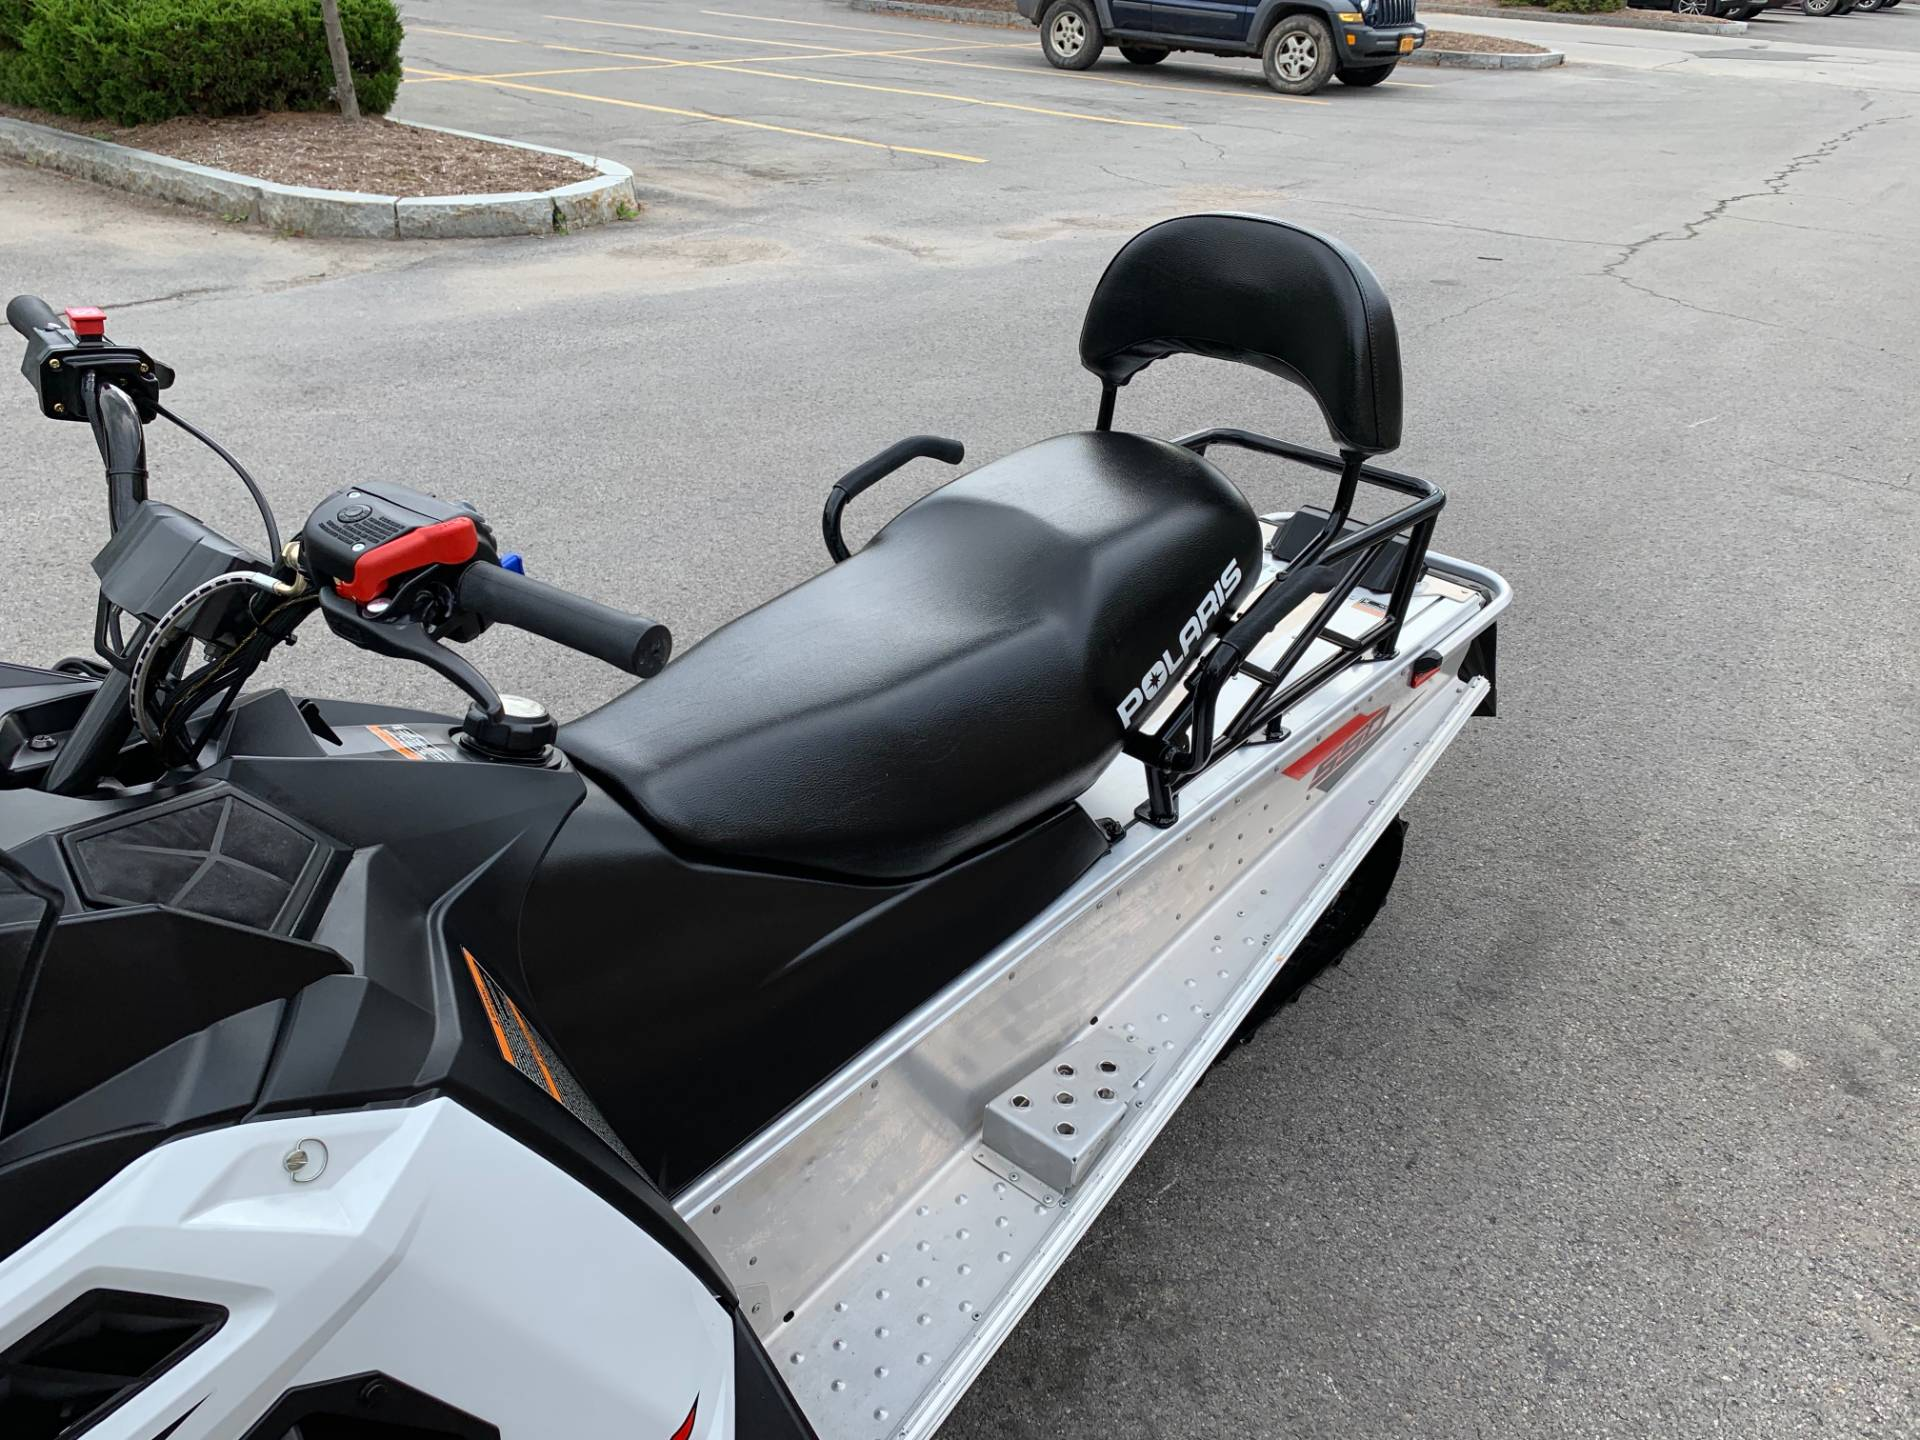 2019 Polaris 550 INDY LXT ES in Herkimer, New York - Photo 14